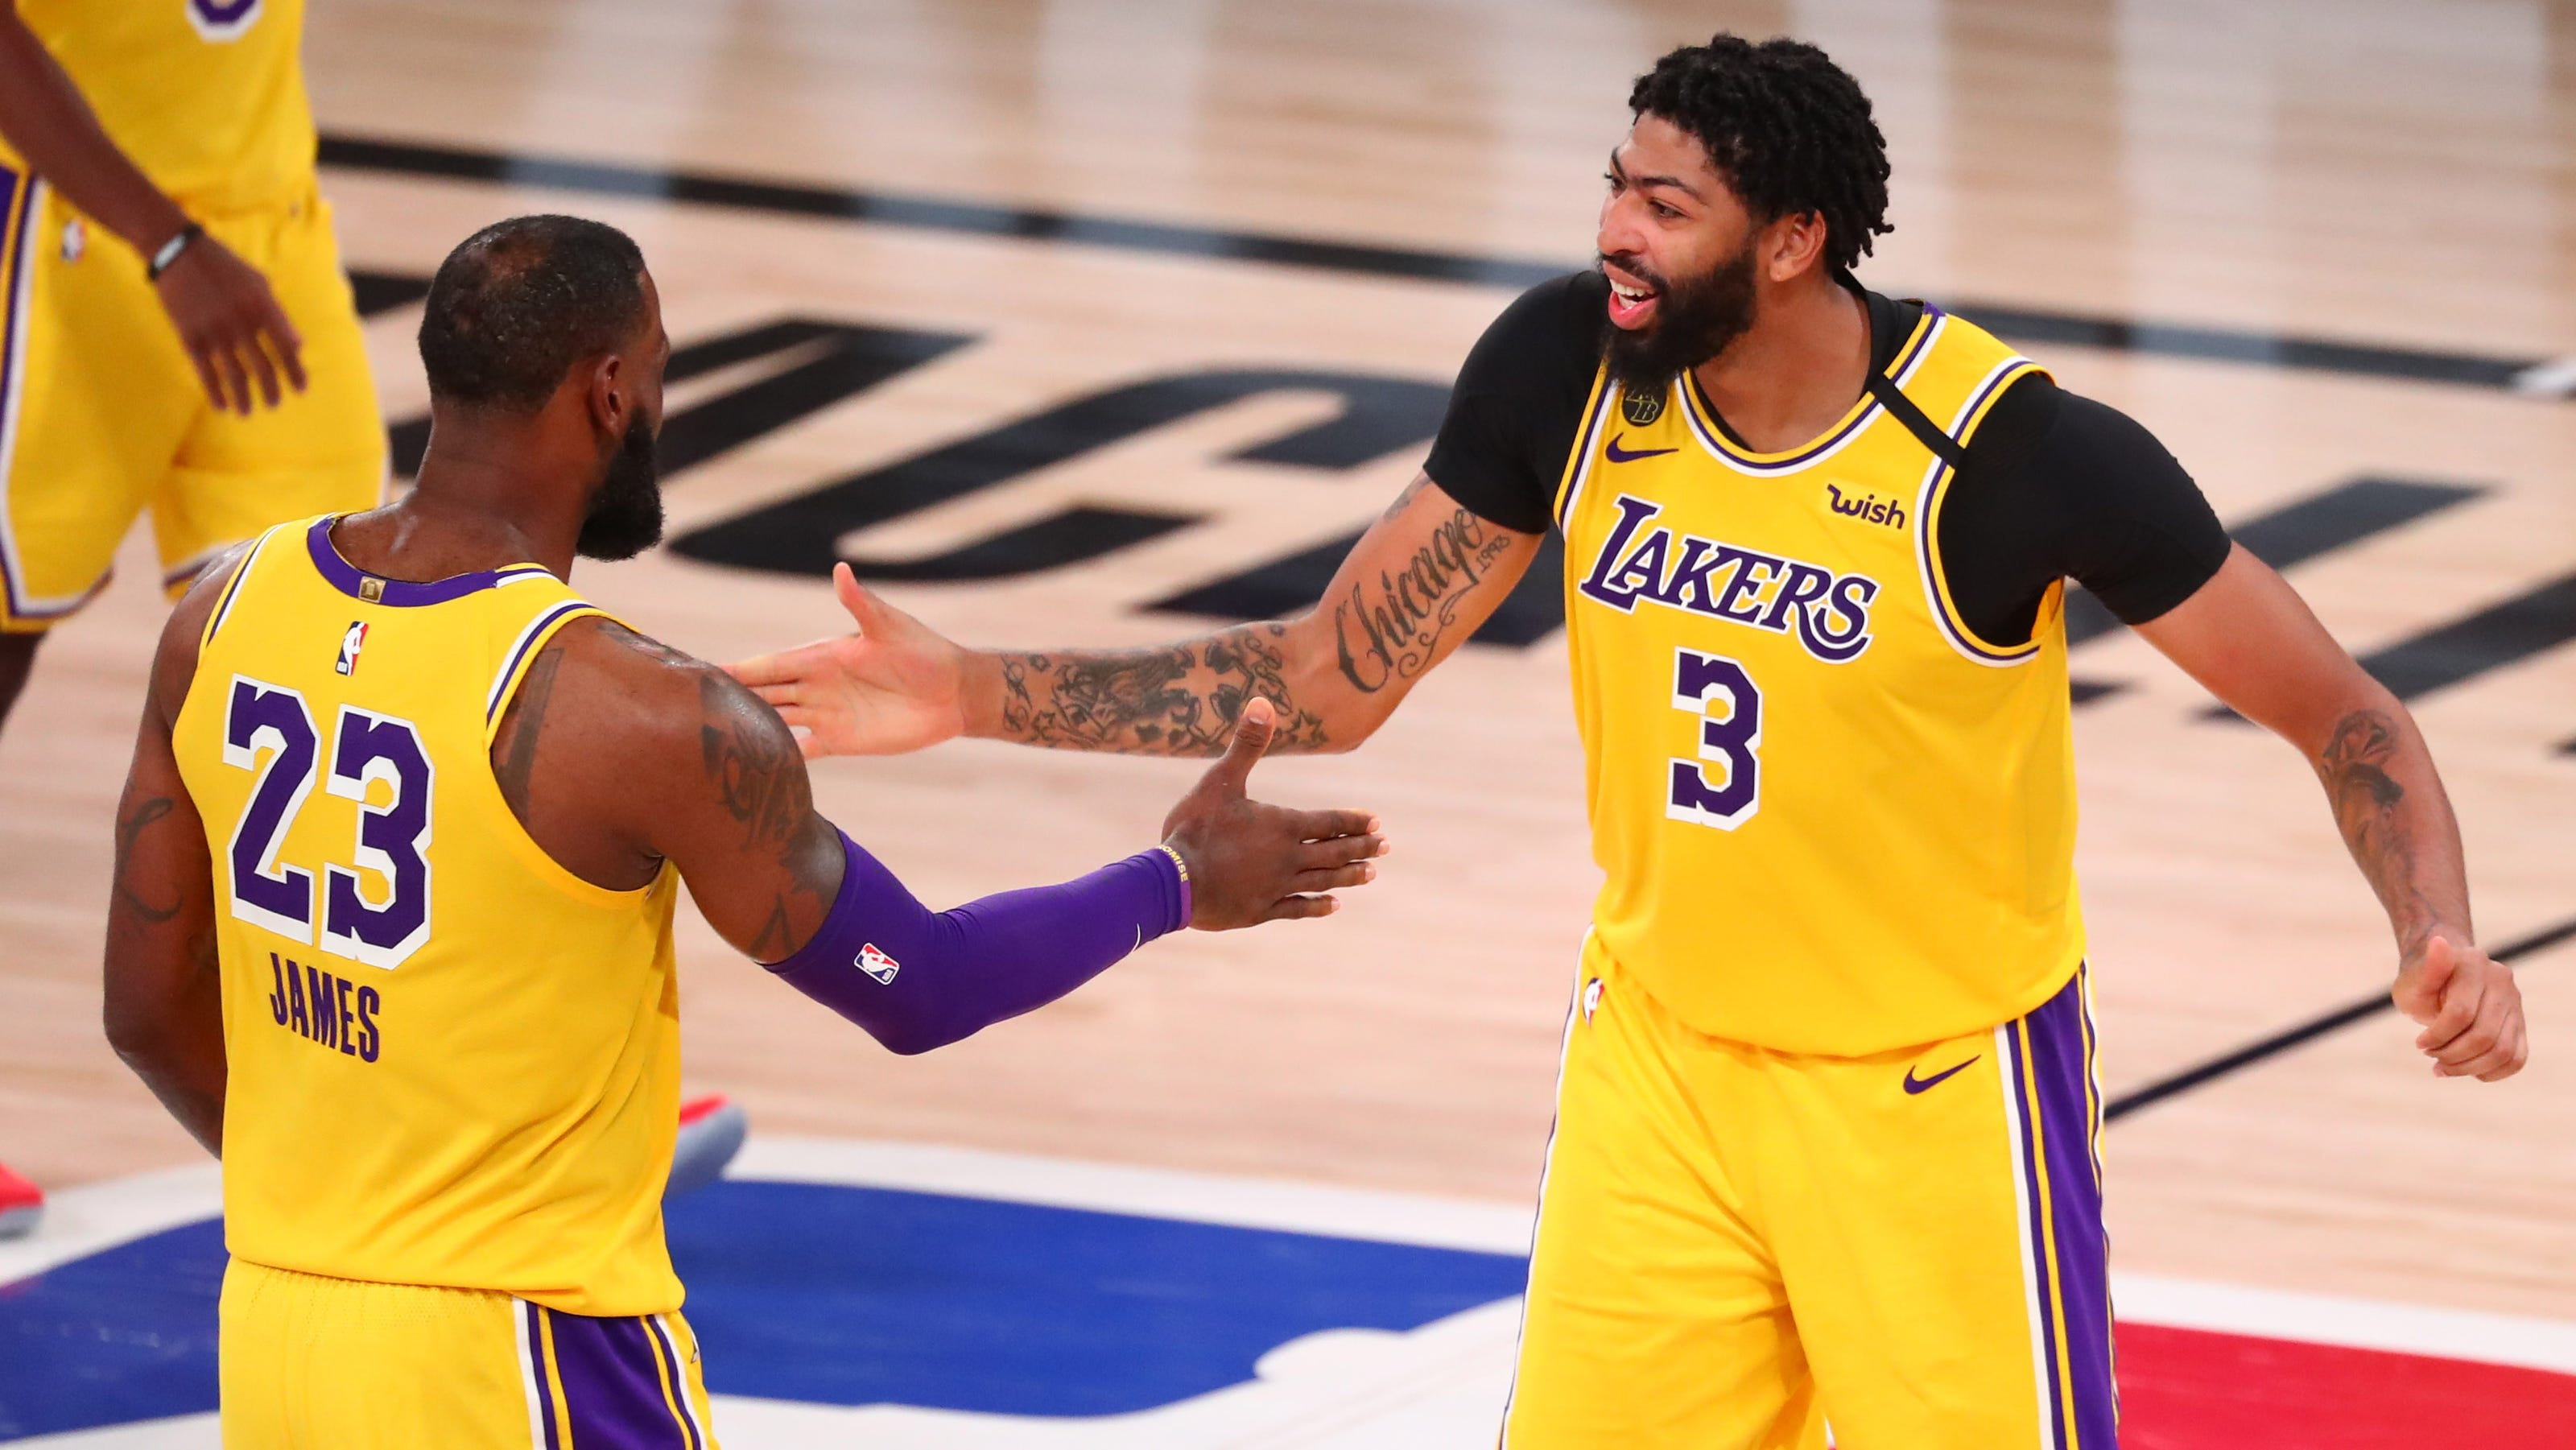 Lakers bully Rockets in Game 4 to take 3-1 series lead